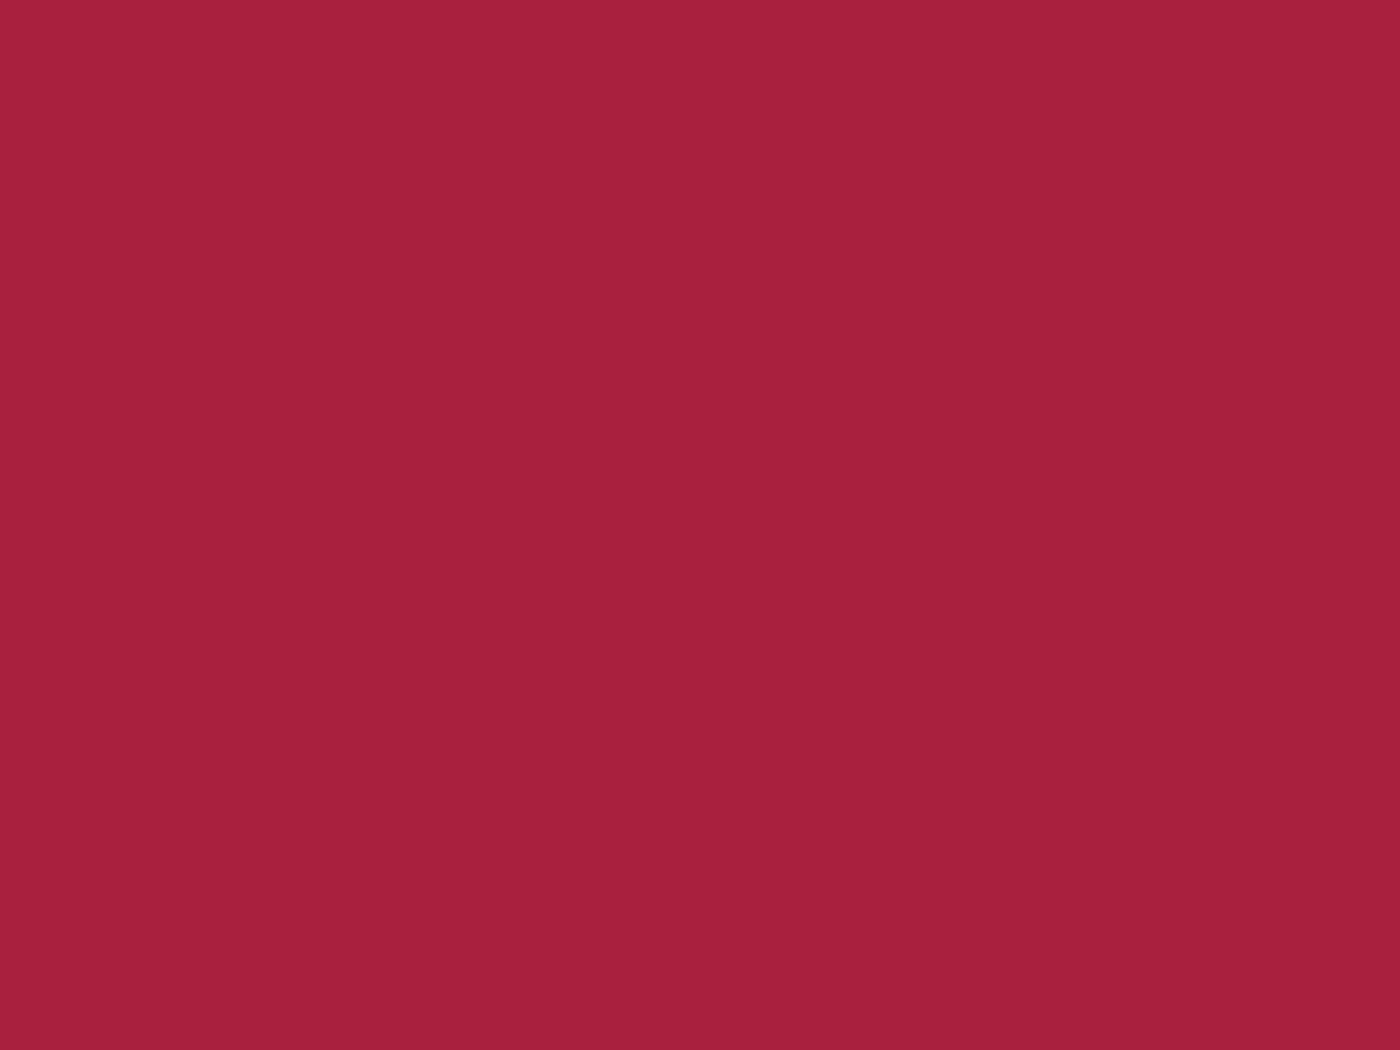 1400x1050 Deep Carmine Solid Color Background